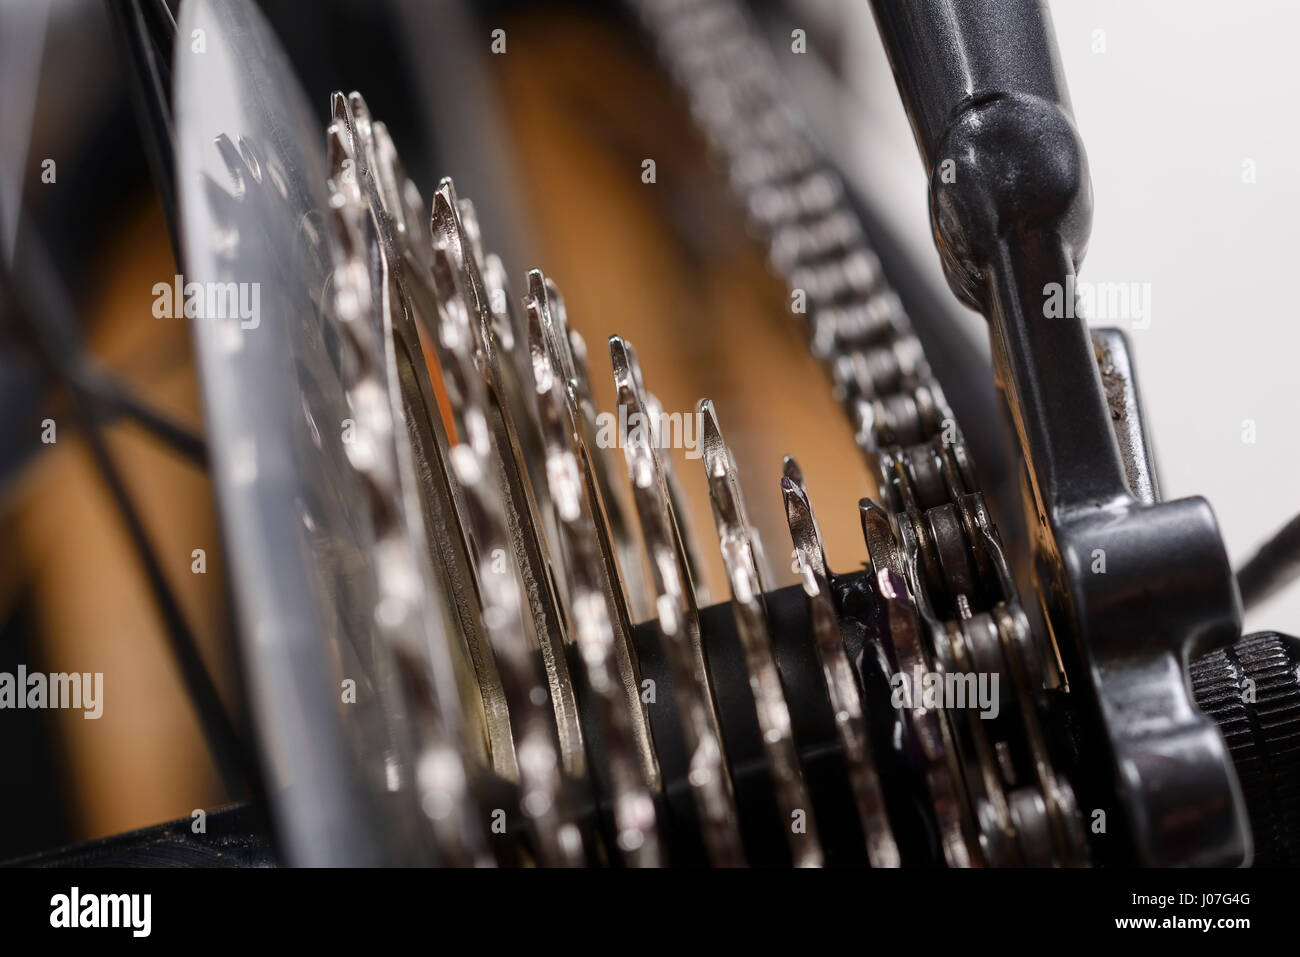 Close up of a bicycle gear cassette. - Stock Image